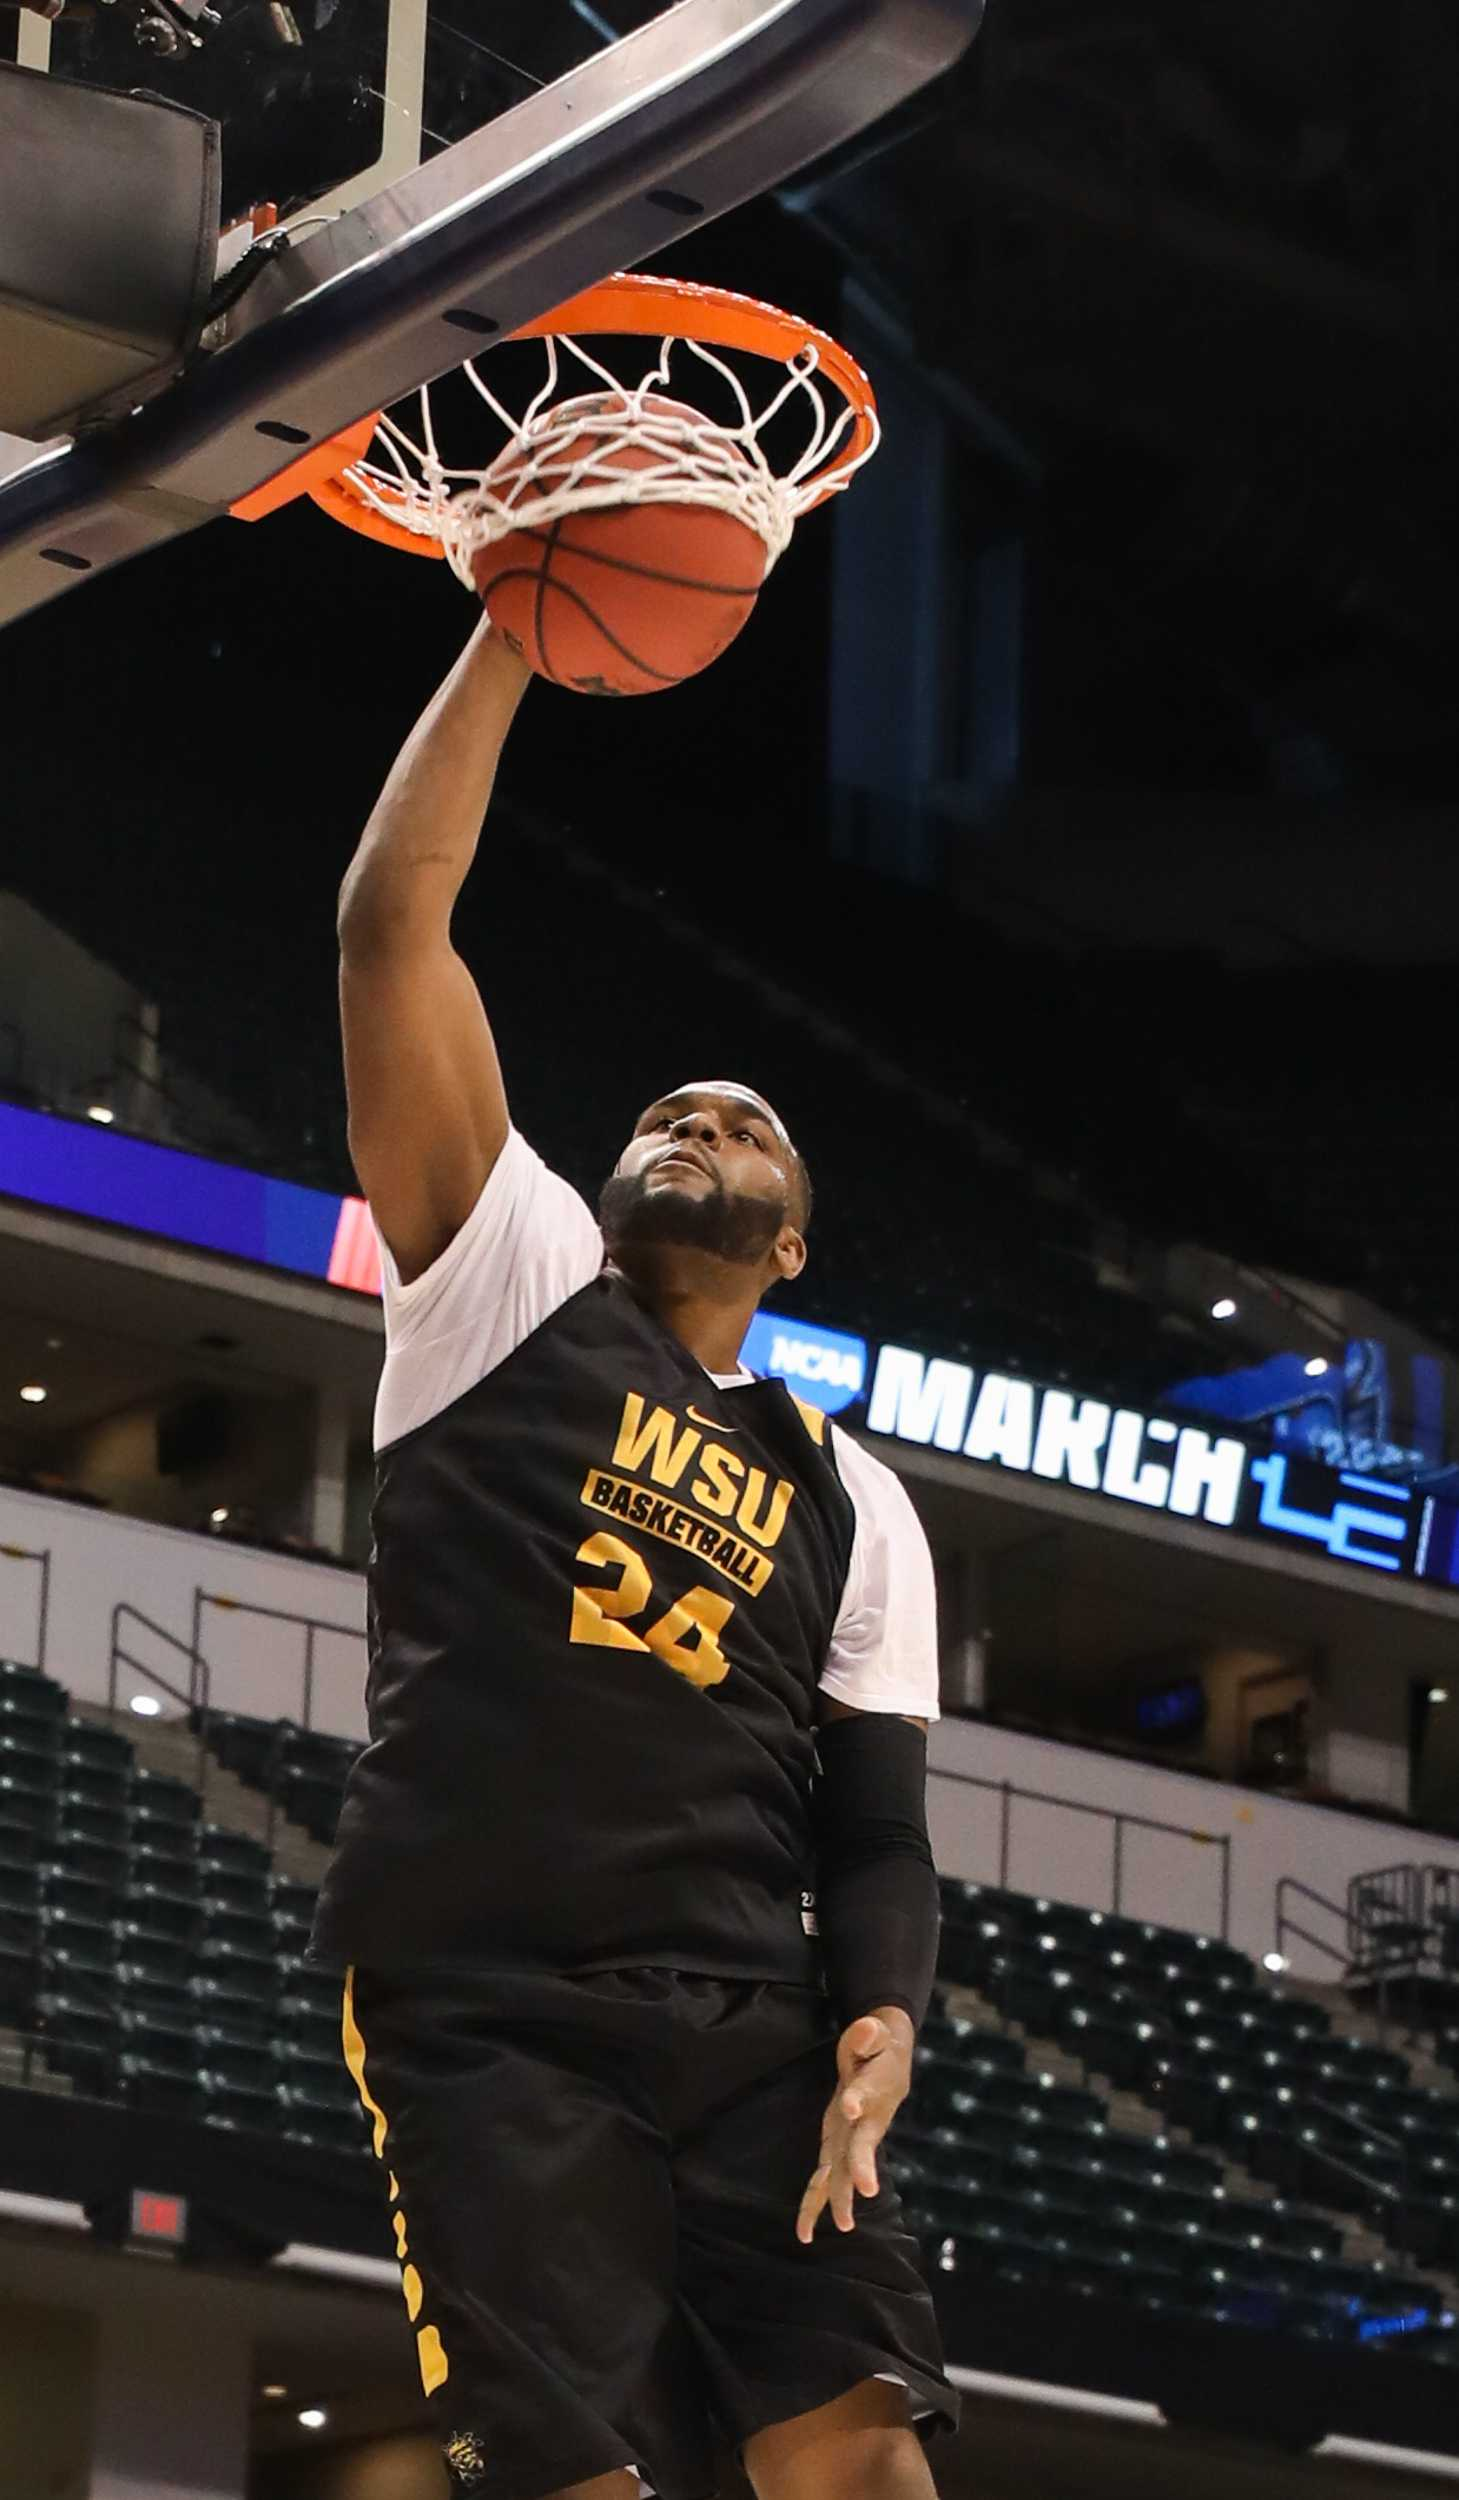 Wichita State center Shaquille Morris dunks during open practice on Thursday afternoon in Bankers Life Fieldhouse in Indianapolis. (Mar. 16, 2017)